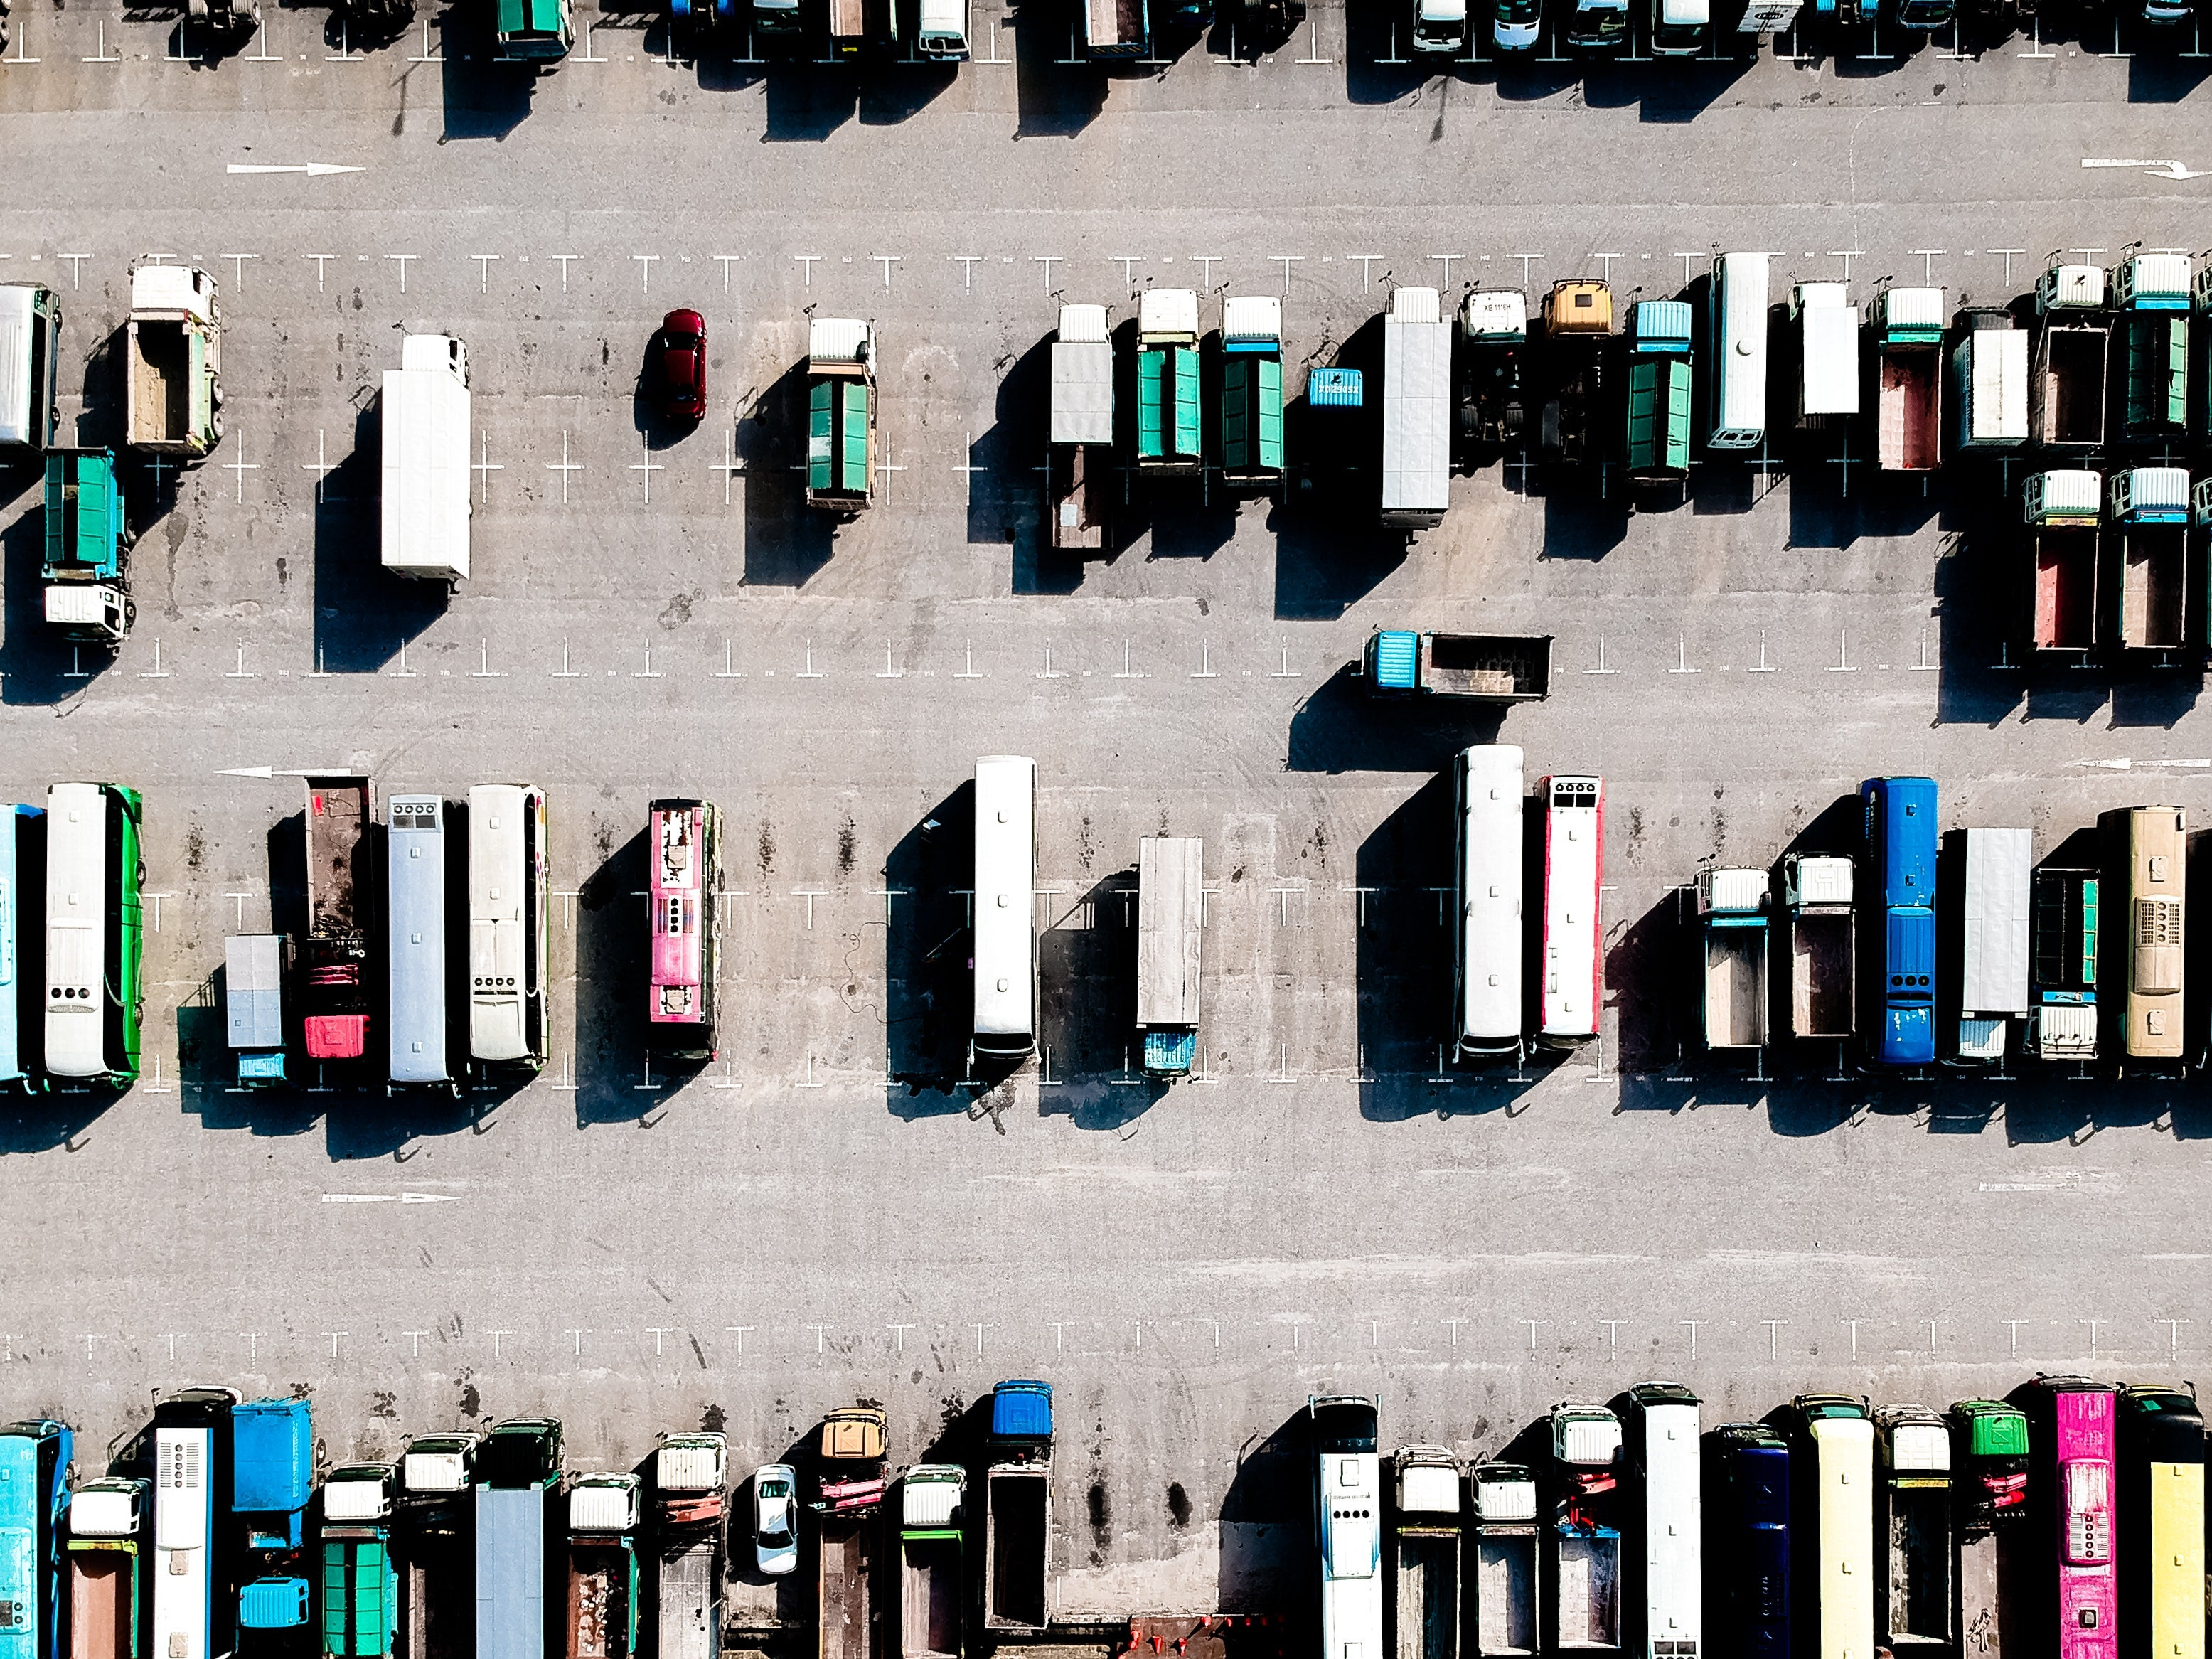 An aerial photograph looking down at a lorry park